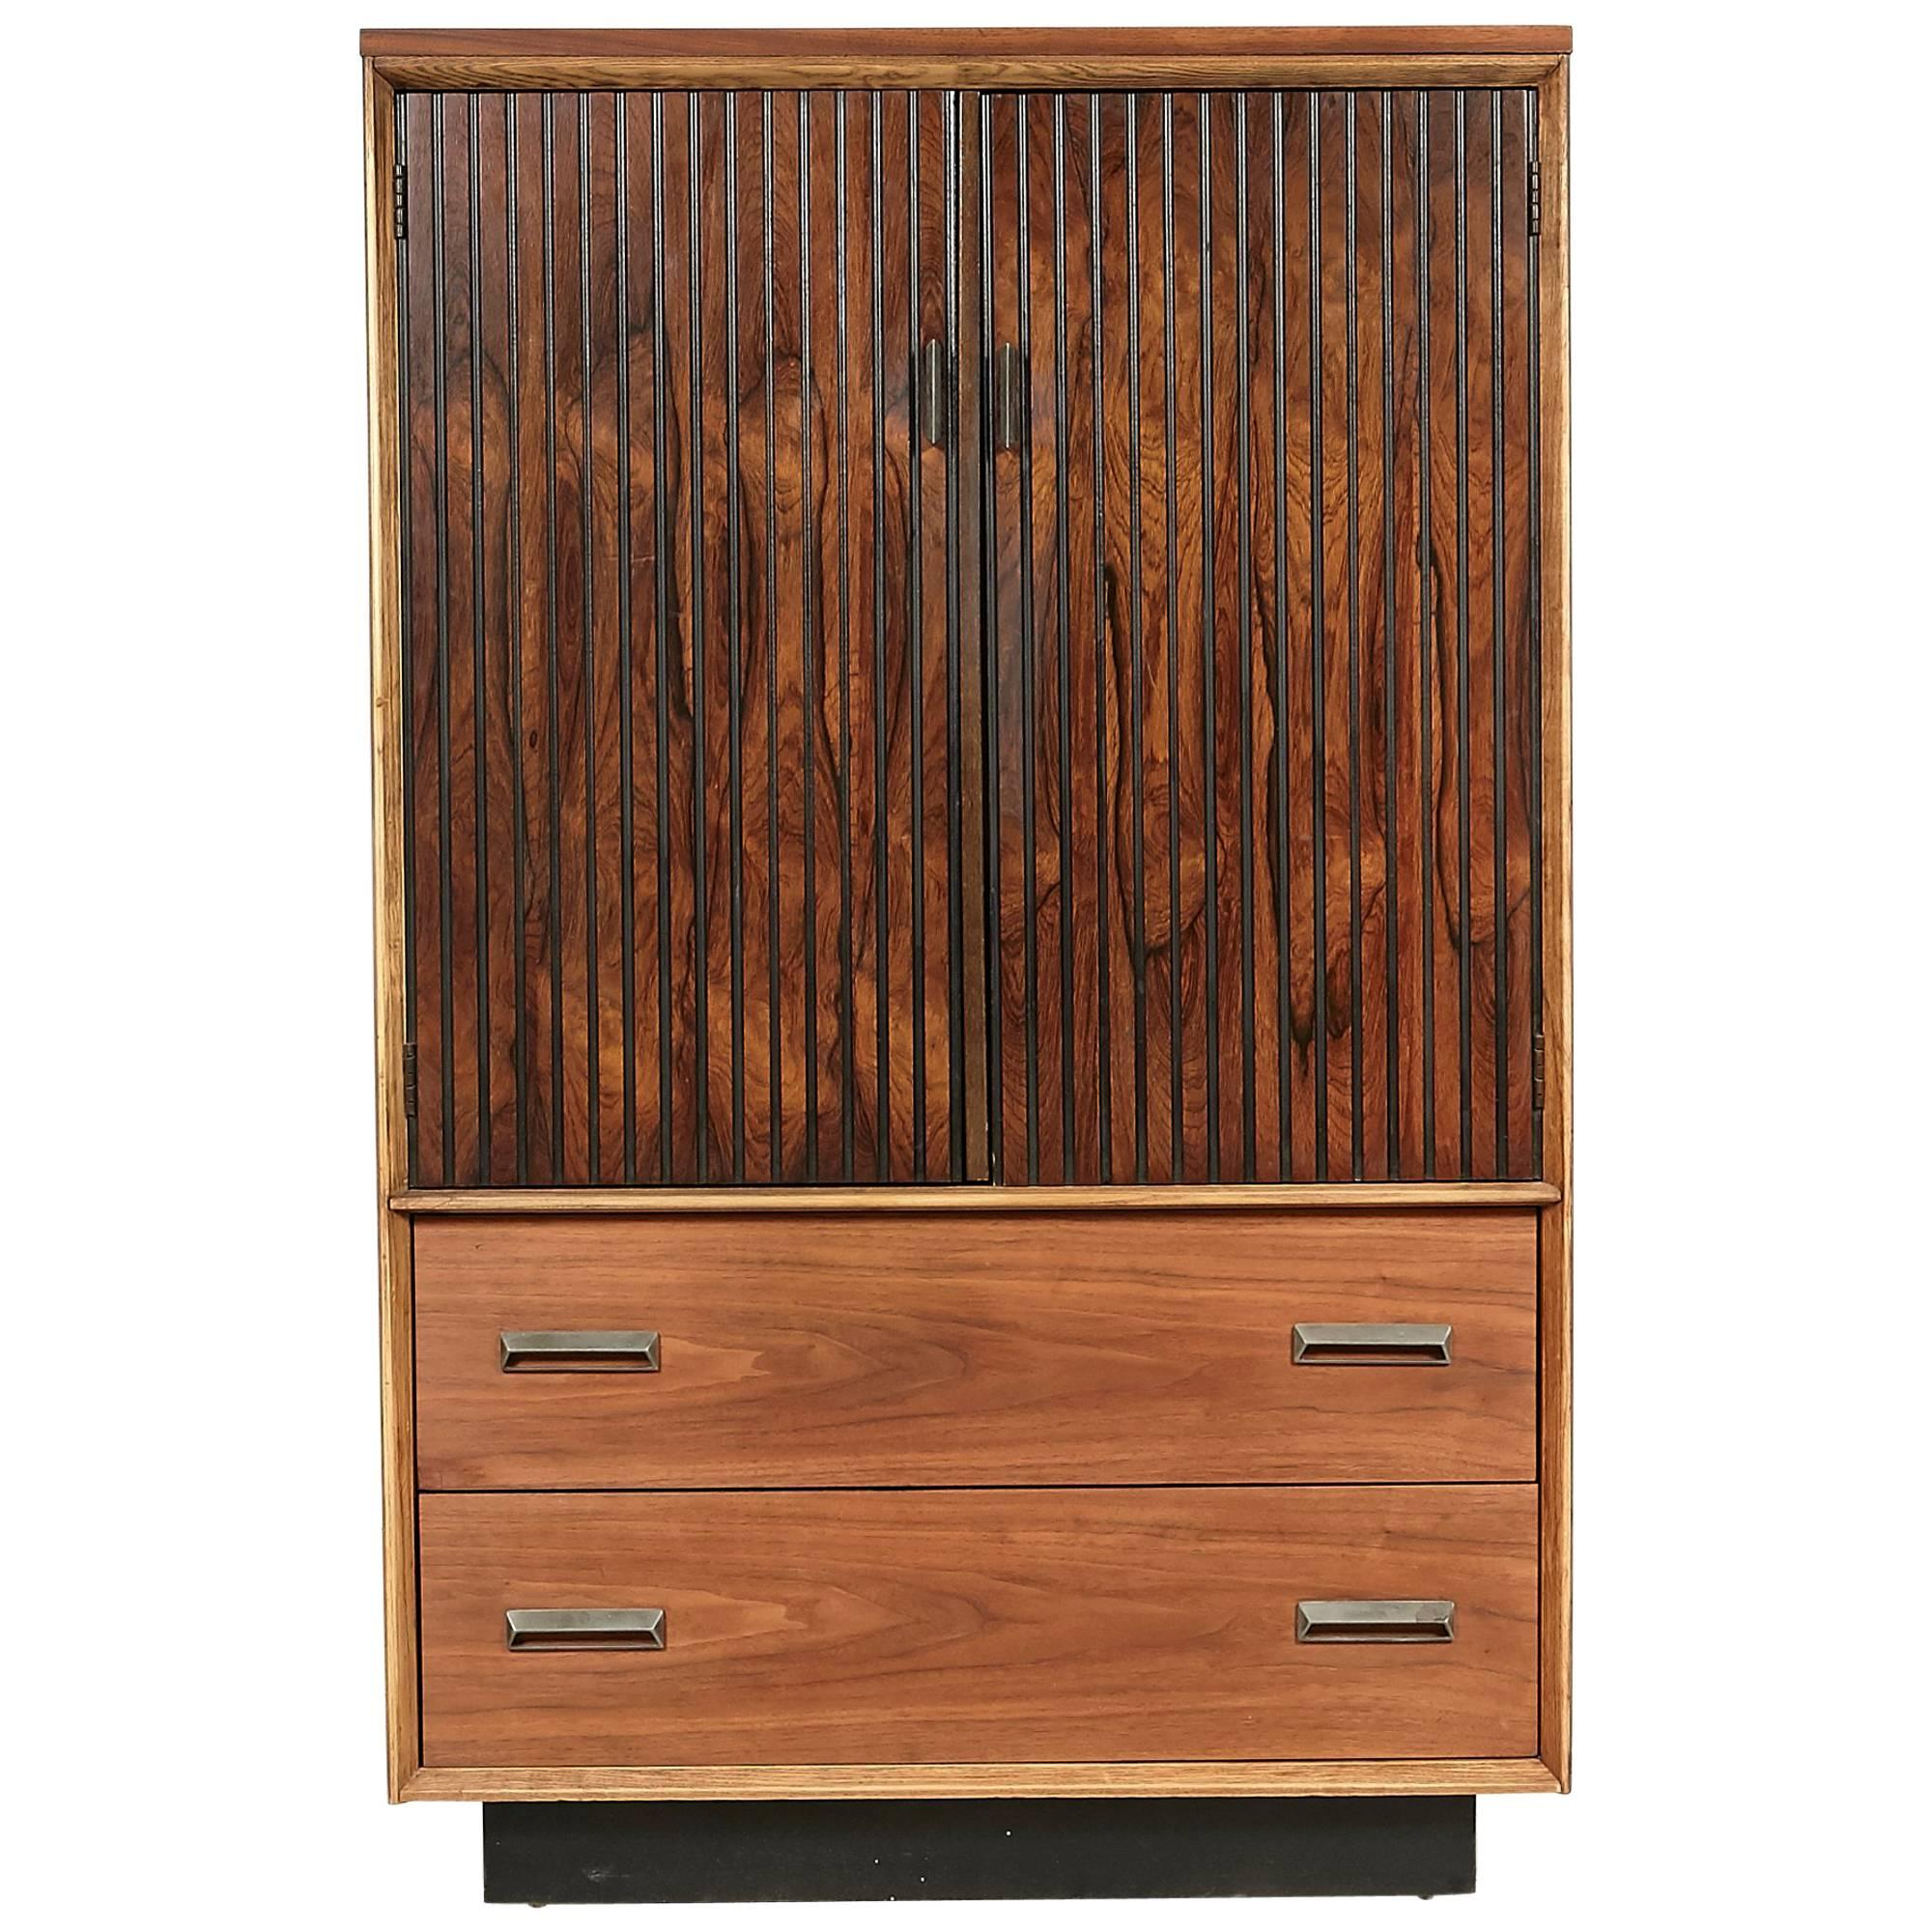 1960s Bassett Furniture Walnut Tall Dresser